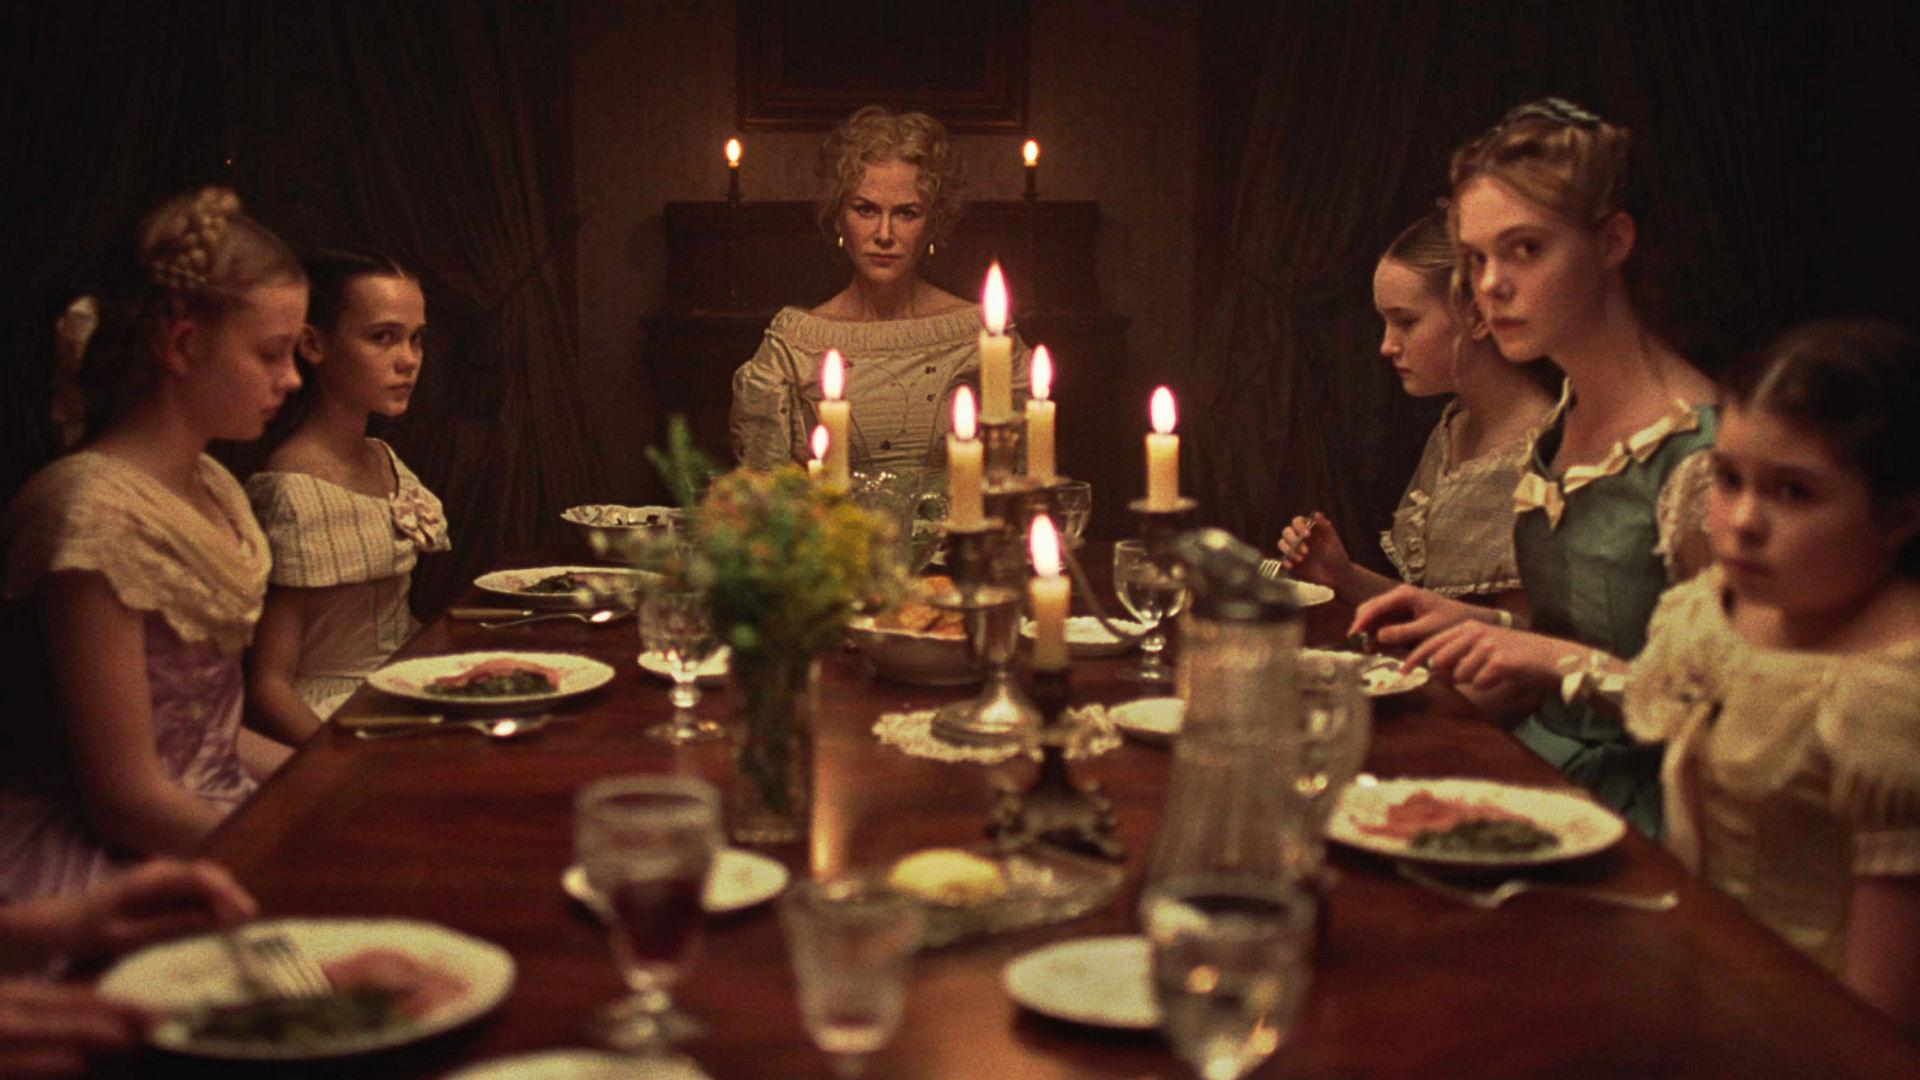 The beguiled le dolci spietate donne di sofia coppola for A painted devil thomas cullinan book